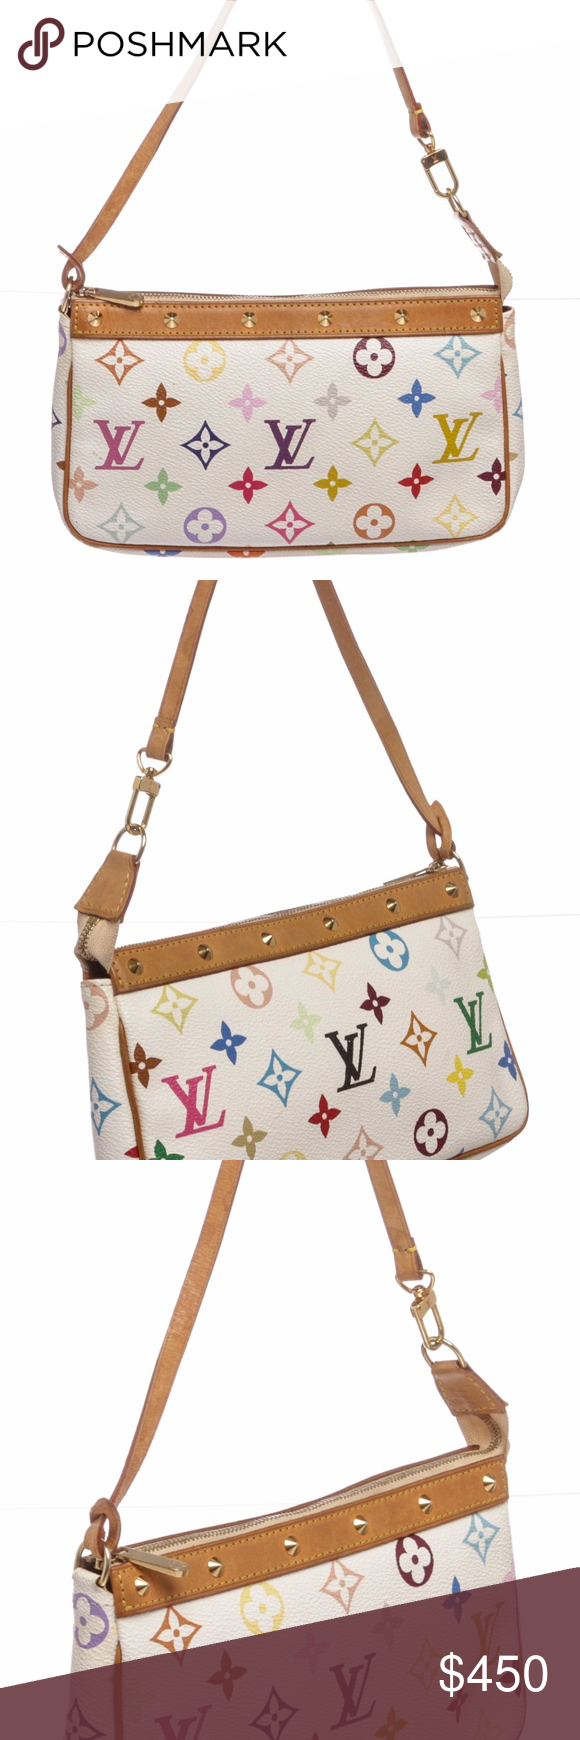 33c9d6ae0a87 Louis Vuitton White Multicolor Monogram Pochette From the Takashi Murakami  Collection. White and multicolore monogram